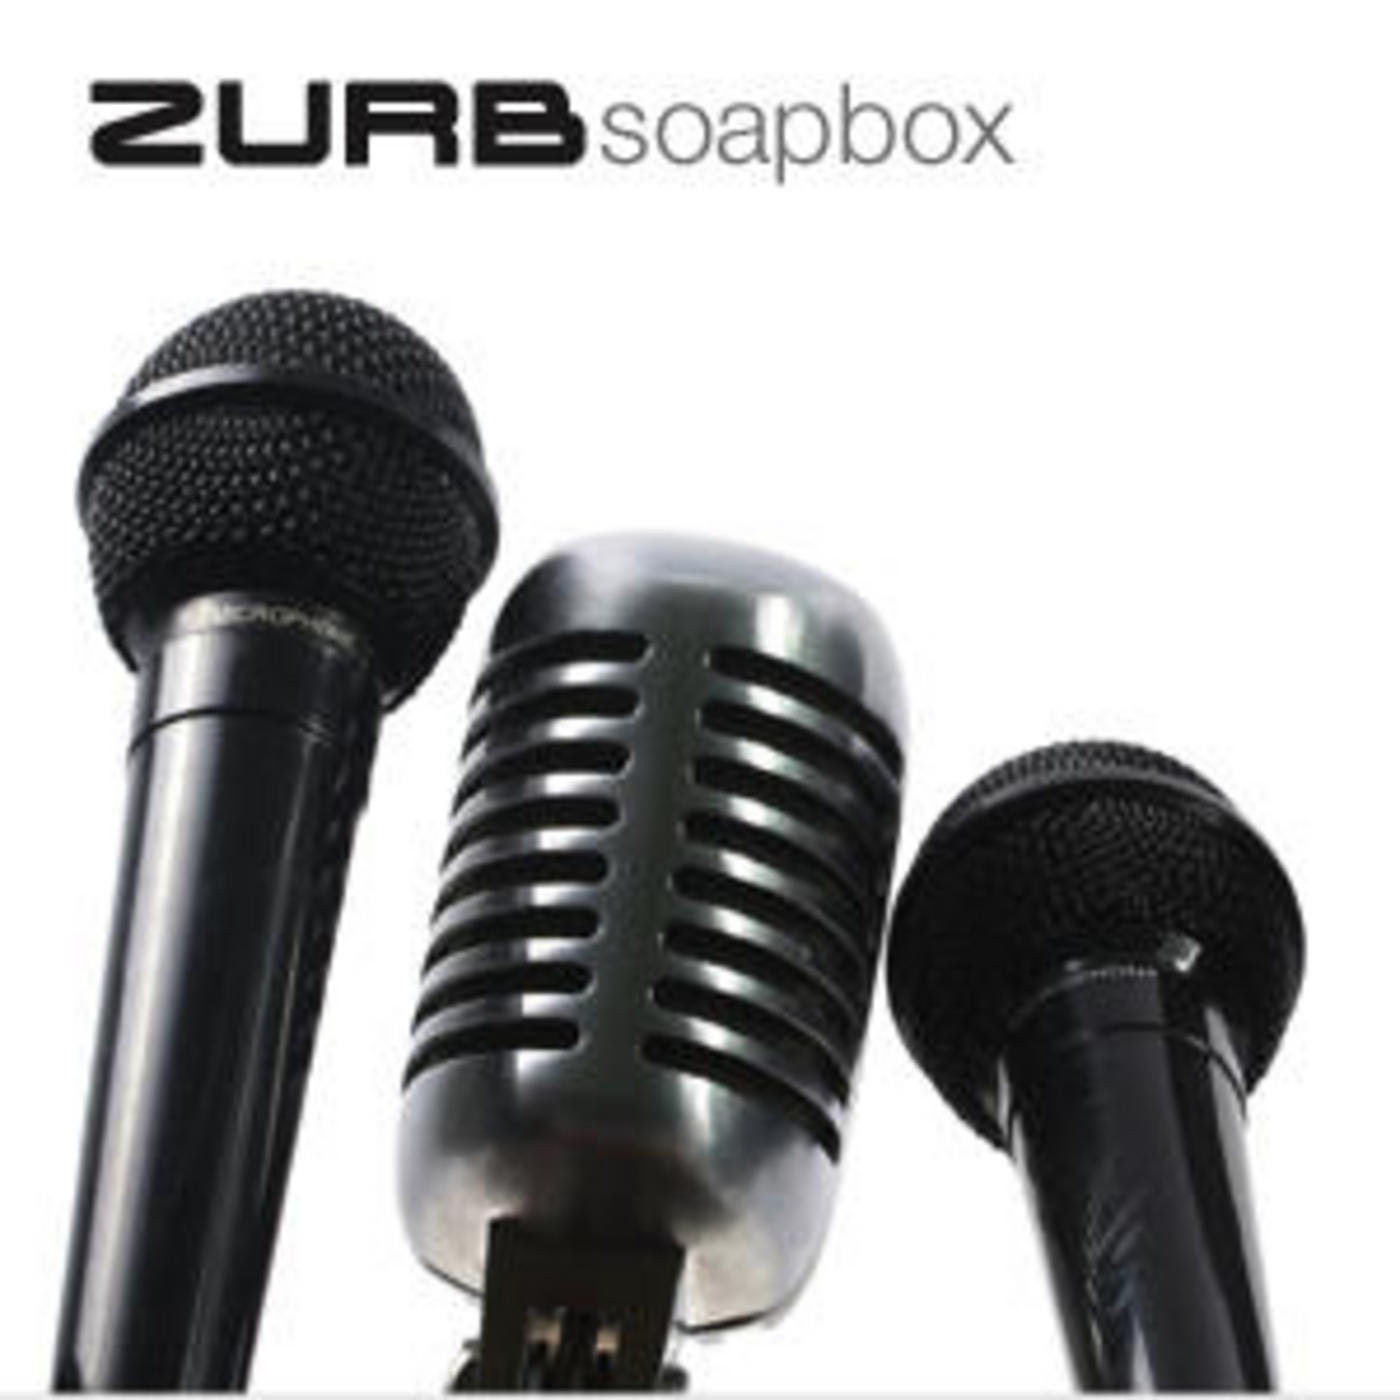 Podcast Cover of ZURBsoapbox